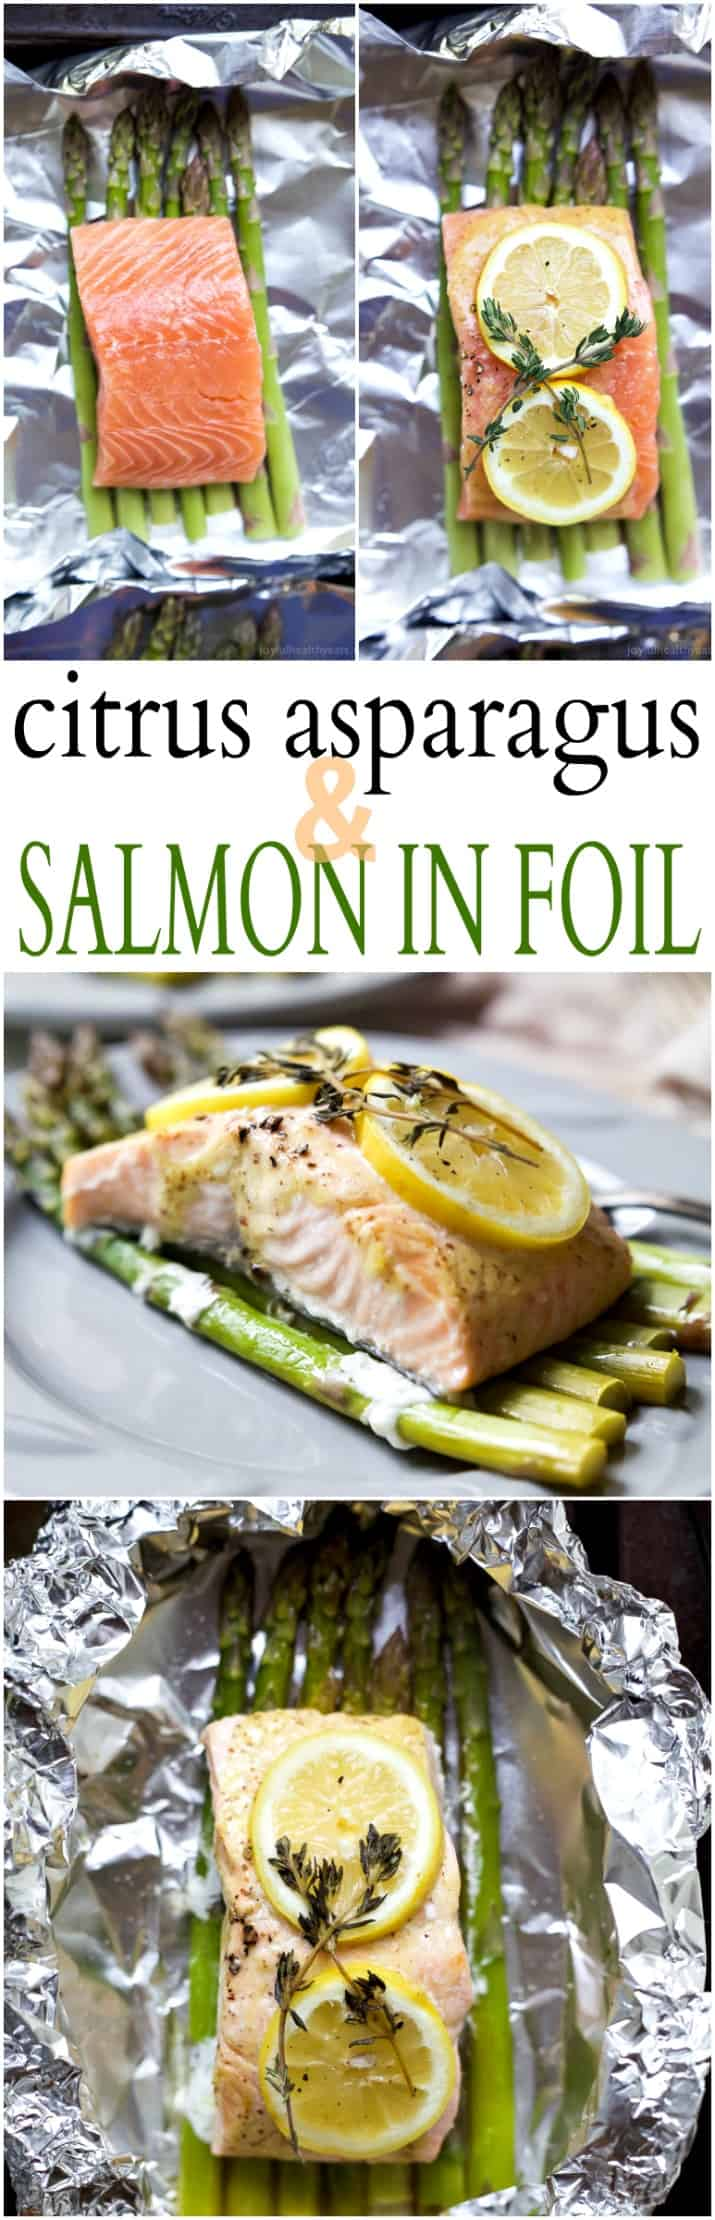 Citrus Asparagus & Salmon in Foil - so easy to make, loaded with roasted garlic and citrus flavor, plus clean up is a breeze! Dinner has never been easier!